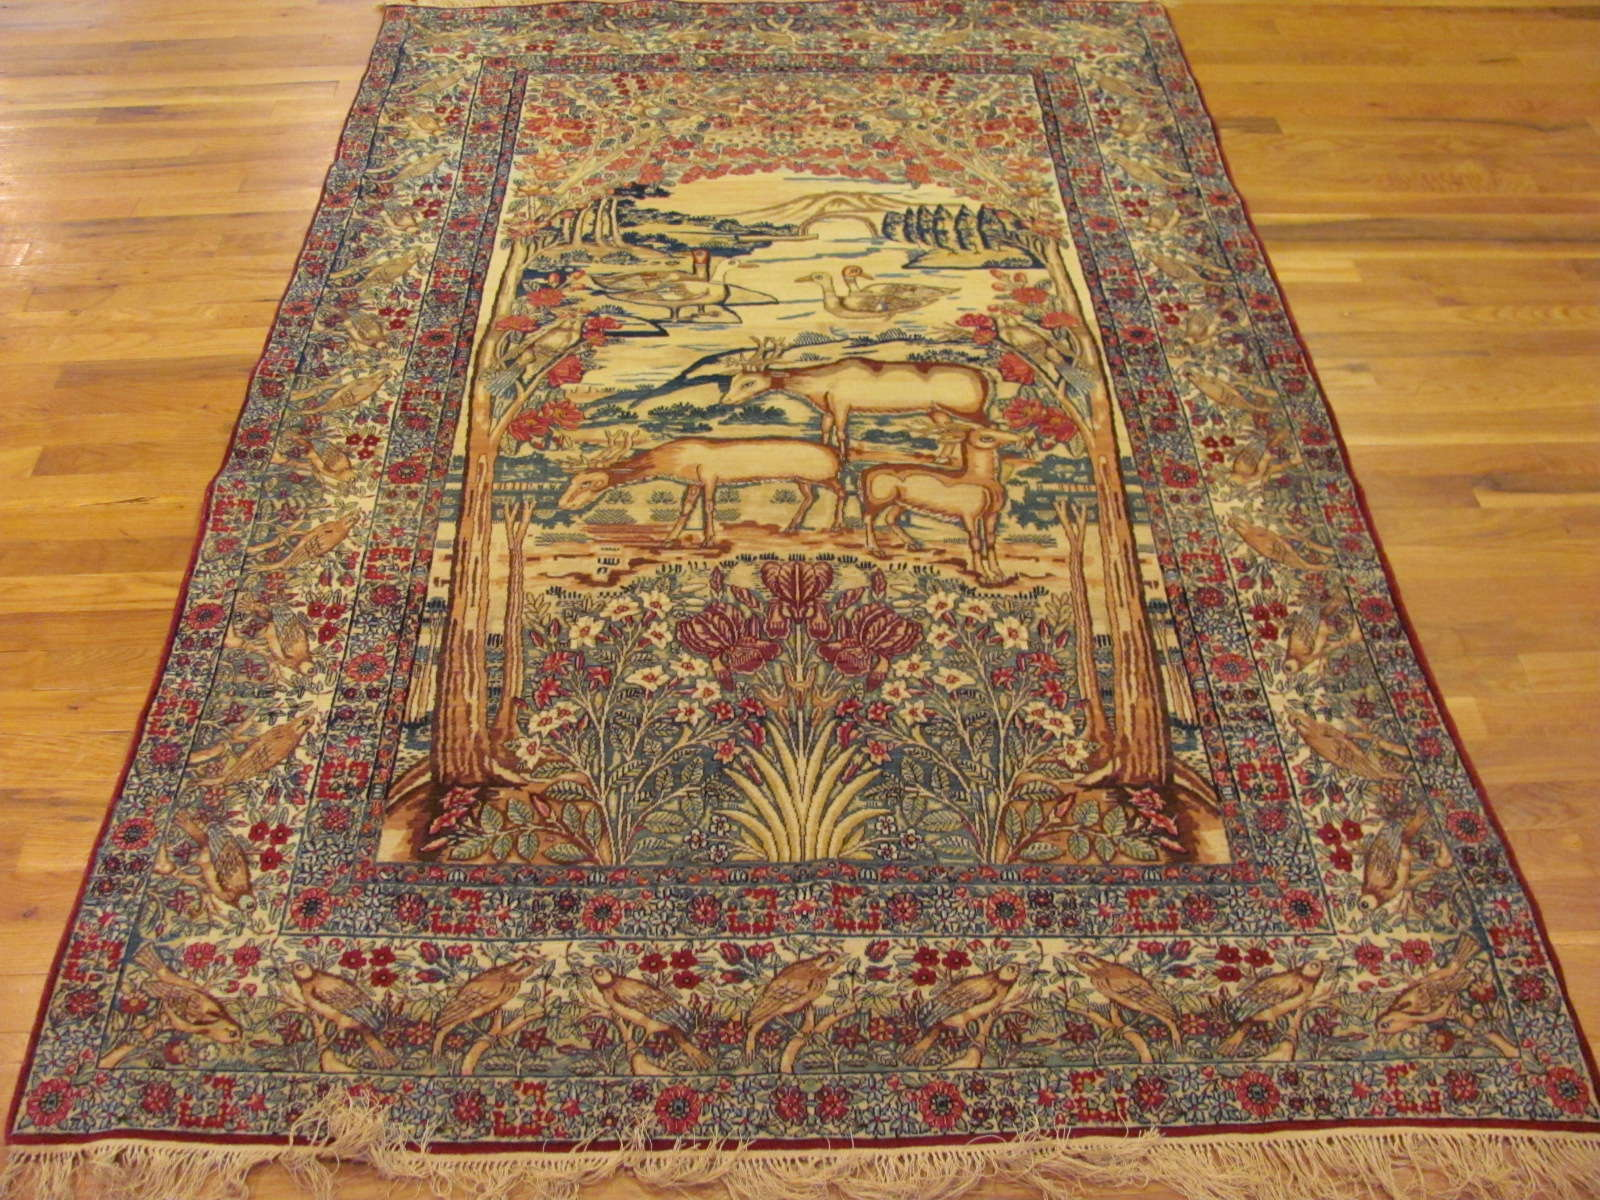 Antique Kerman Lavar Carpet | Persia | Circa 1910